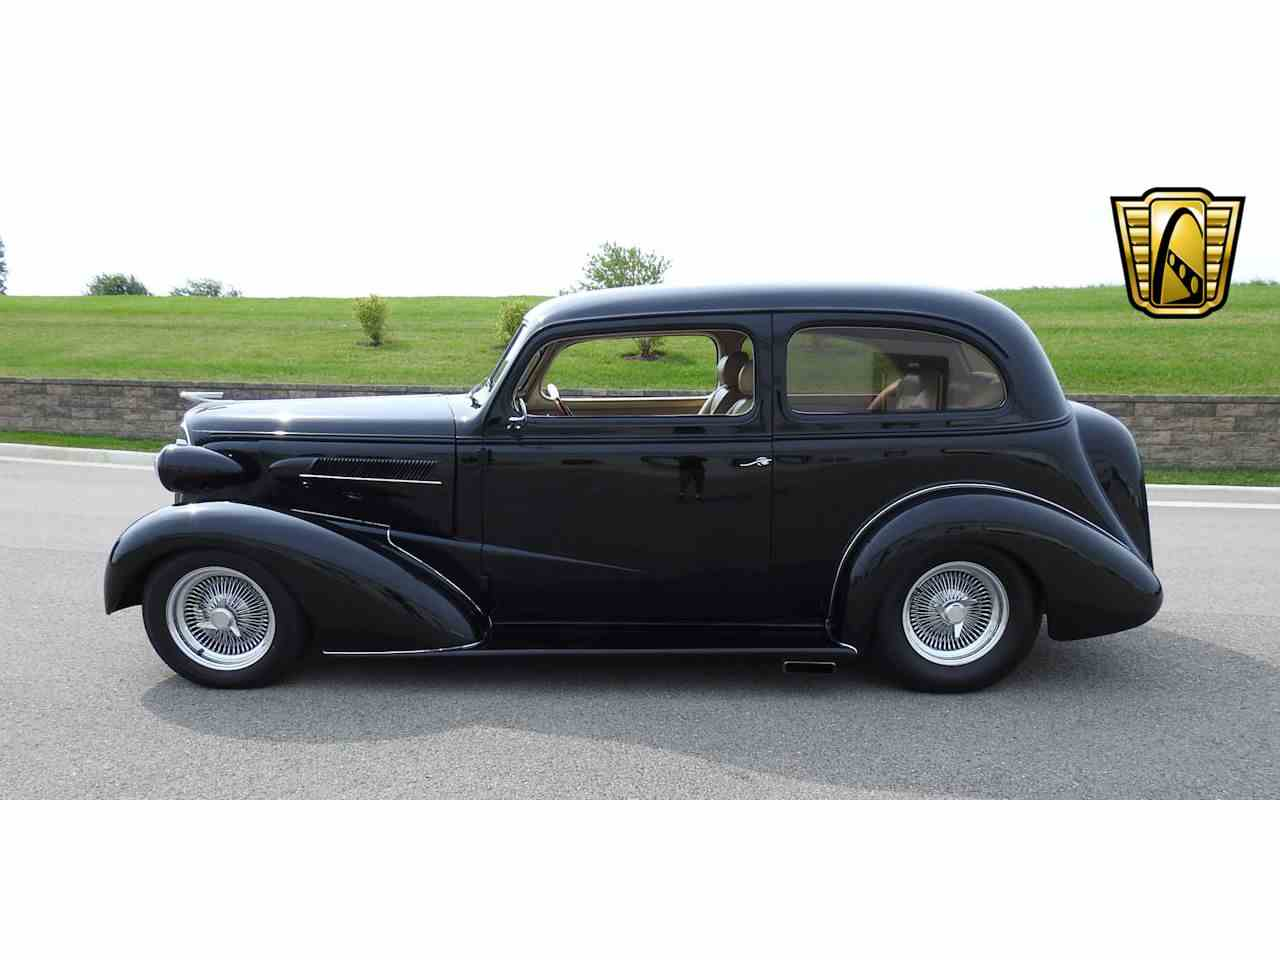 Large Picture of Classic '37 Chevrolet Street Rod located in Kenosha Wisconsin - $52,000.00 - MZDR